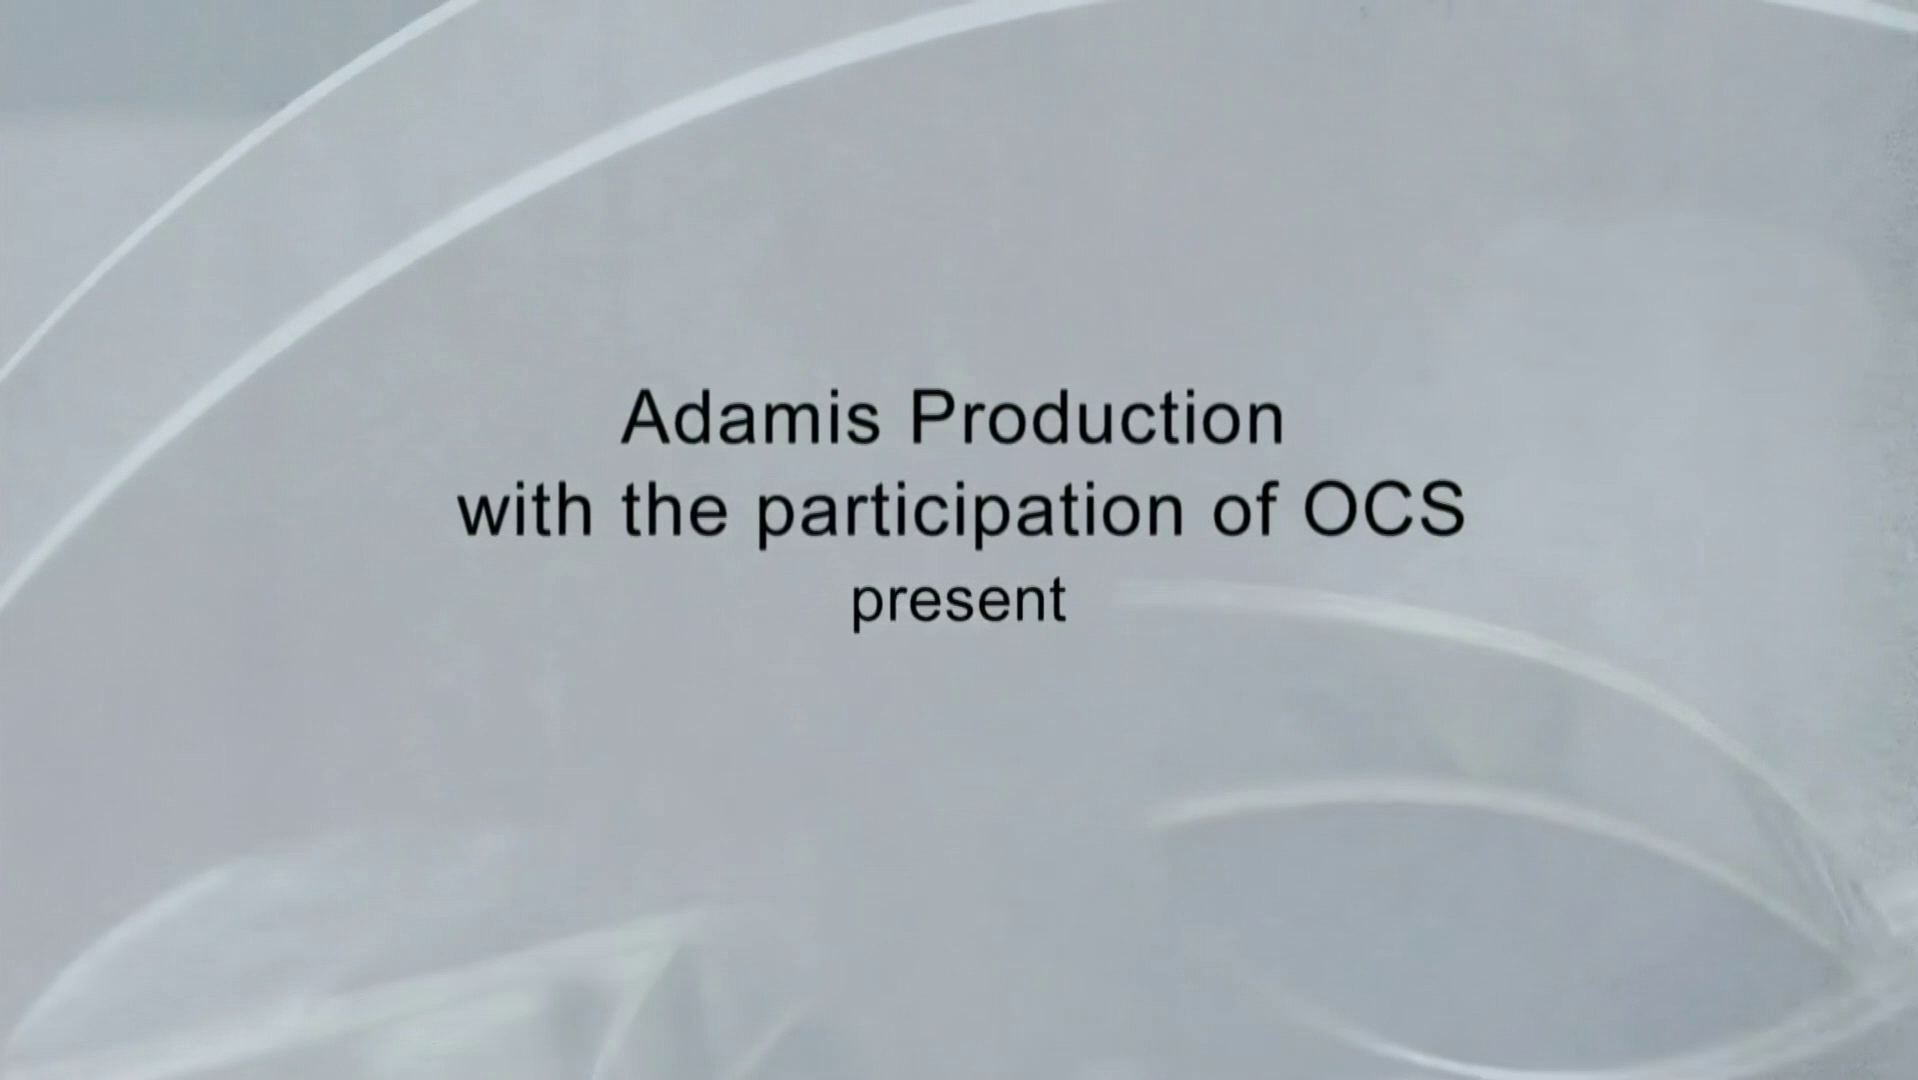 Main title from the 2000 'Elizabeth Taylor and Richard Burton' episode of Hollywood Couples (1). Adamis Production with the participation of OCS present